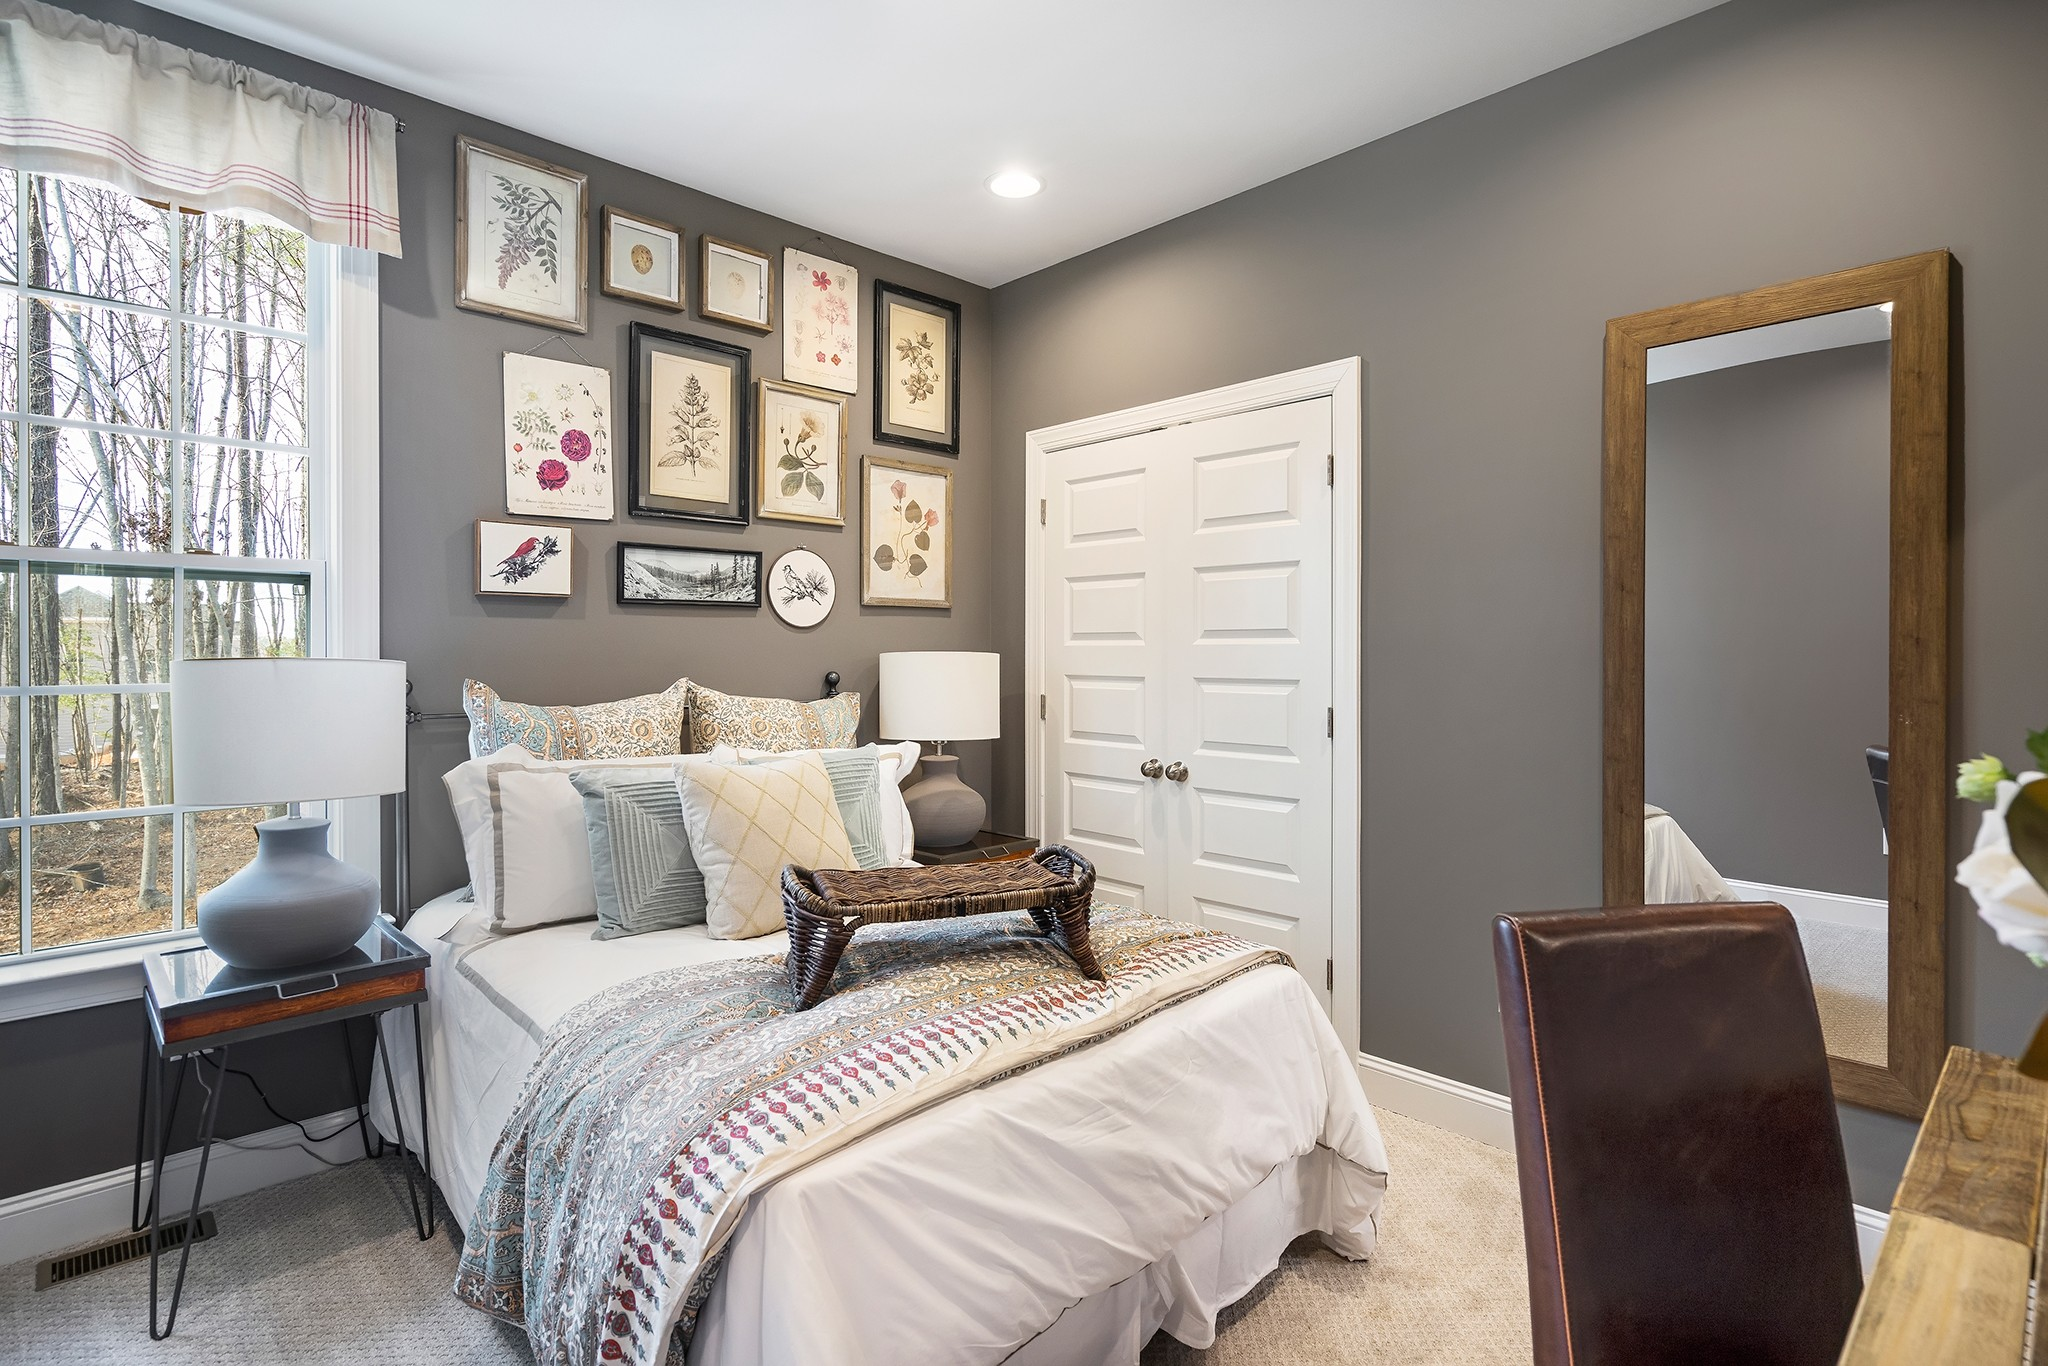 Ballentine Place, The Edenton Model, Royal Oaks a Division of Mattamy Homes, First Floor Guest Su...